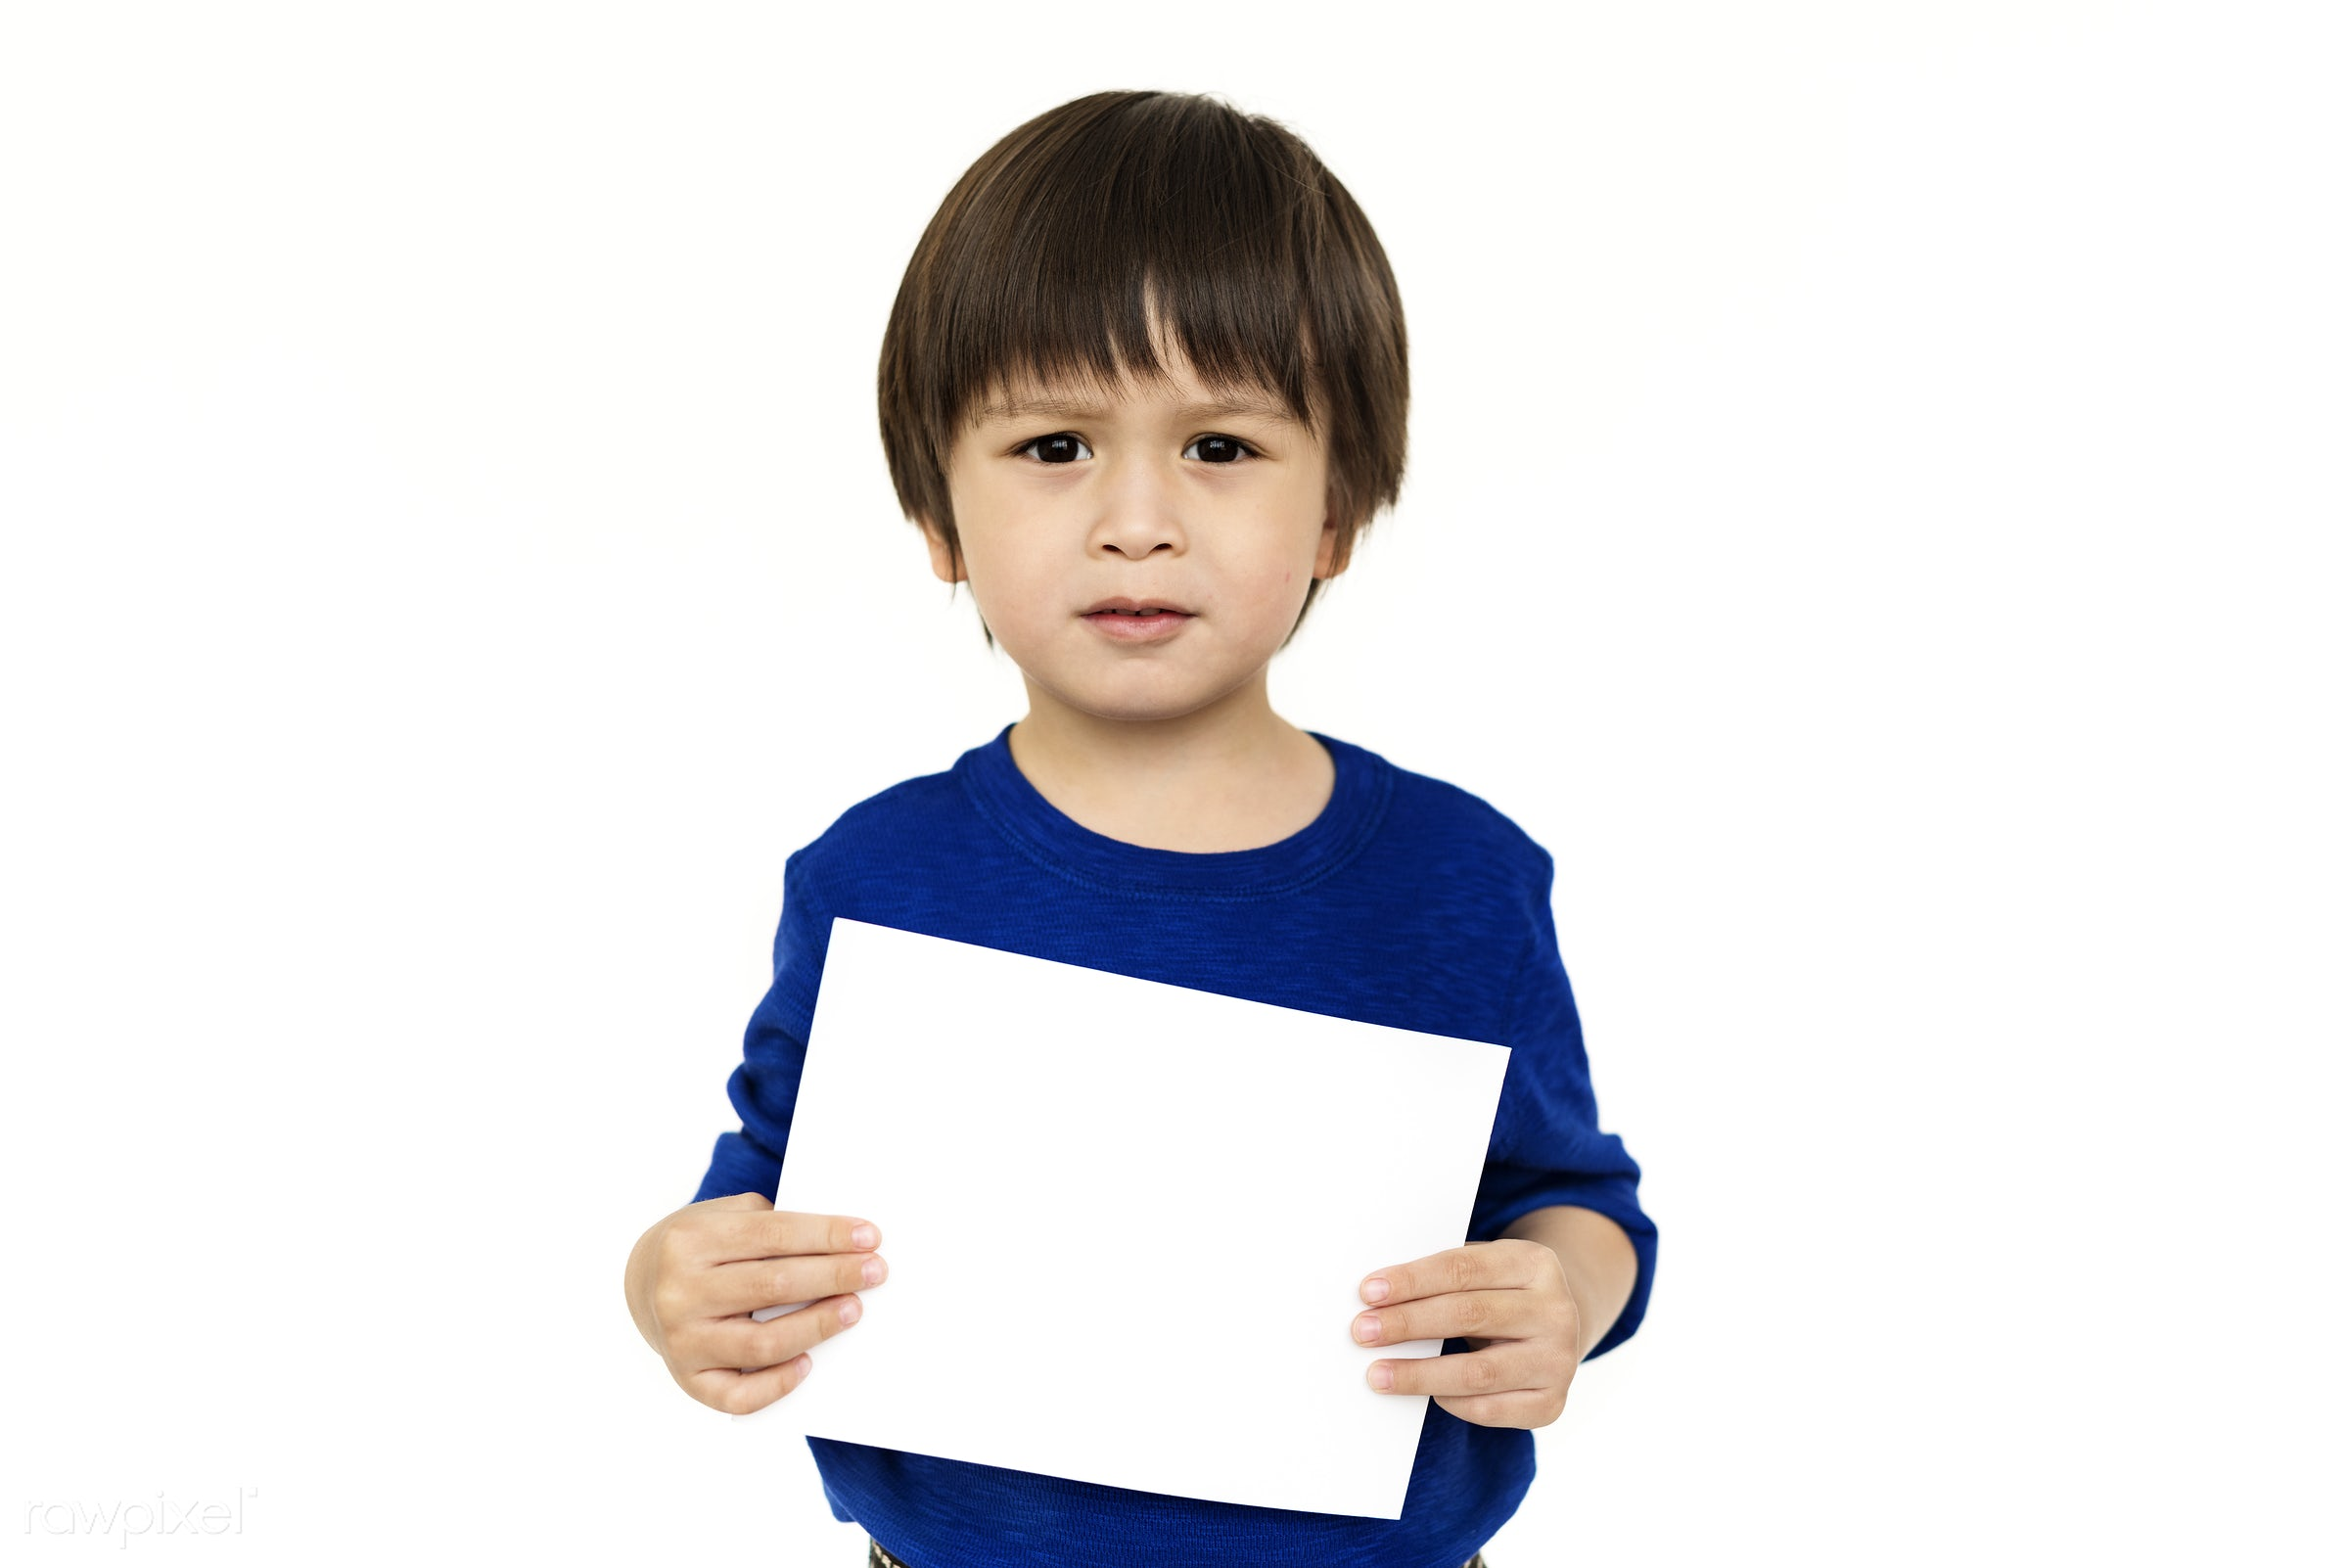 studio, expression, person, copy space, paper, isolated on white, advertising, children, kid, asian, child, empty, showing,...